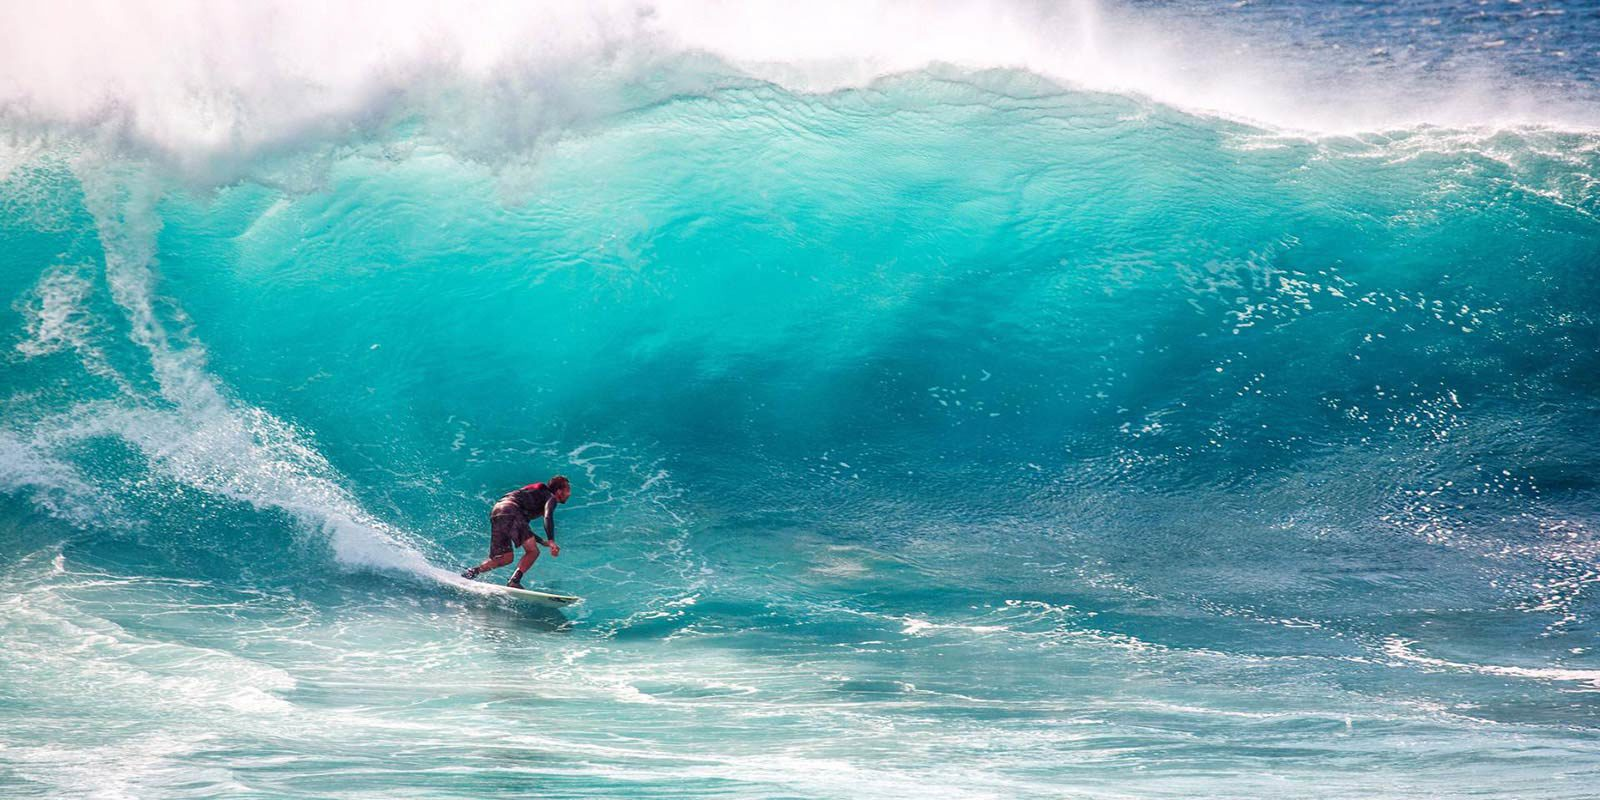 Person surfacing on large wave.